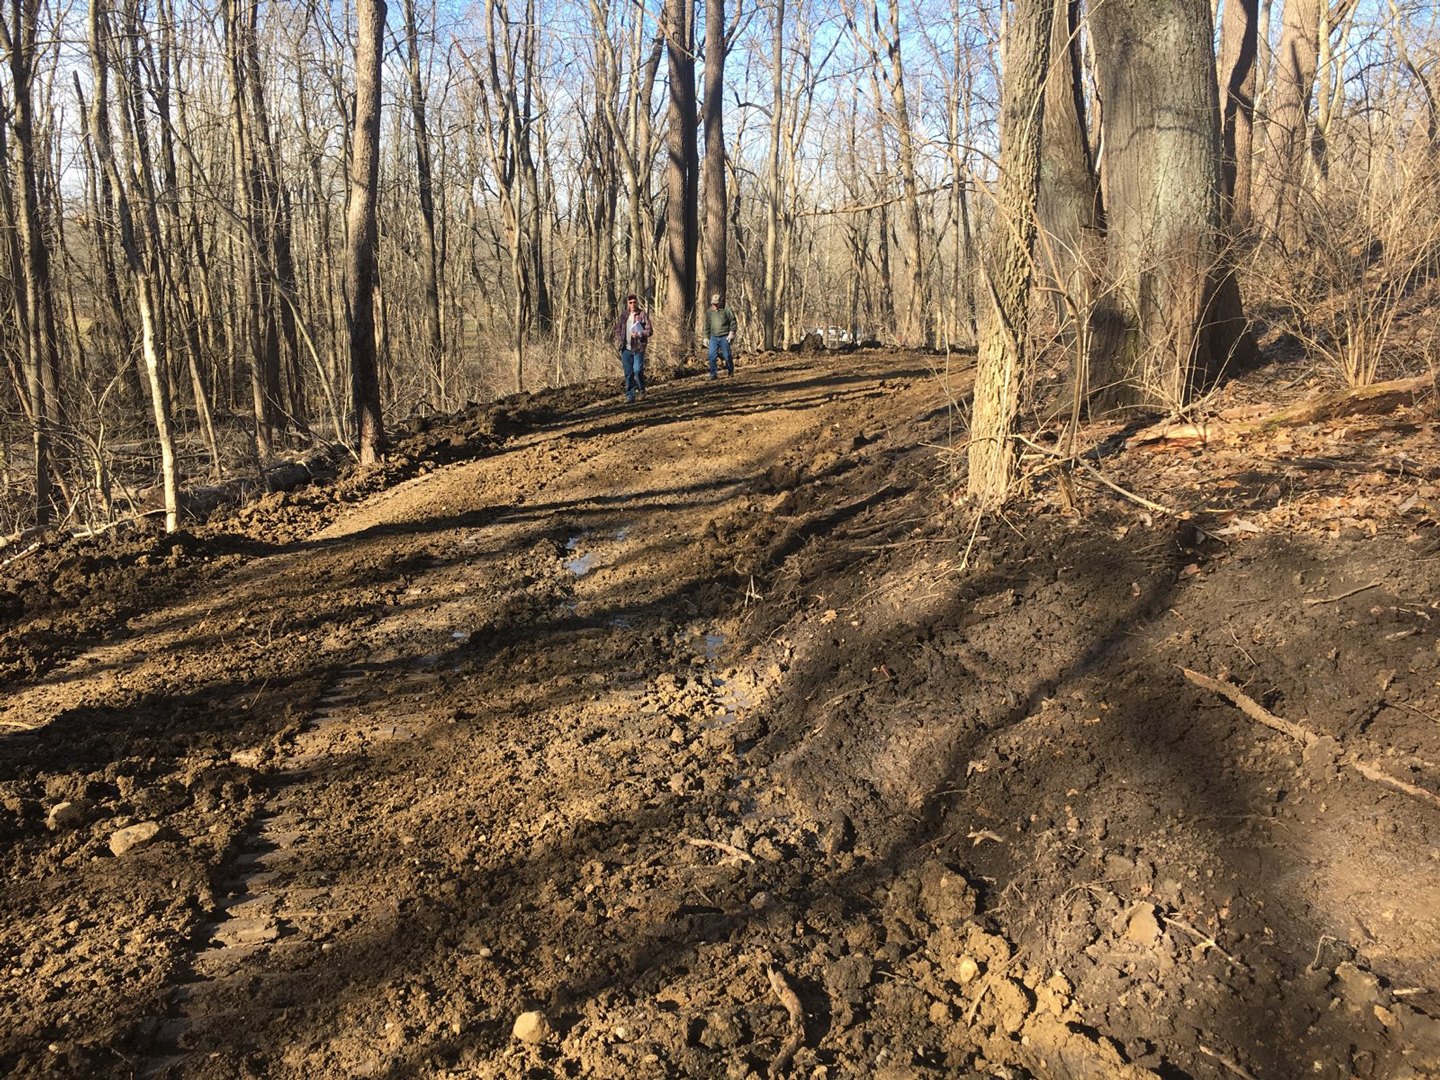 Excavated trail bed will form part of the Camp Chase Trail running through Battelle Darby Creek Metro Park.